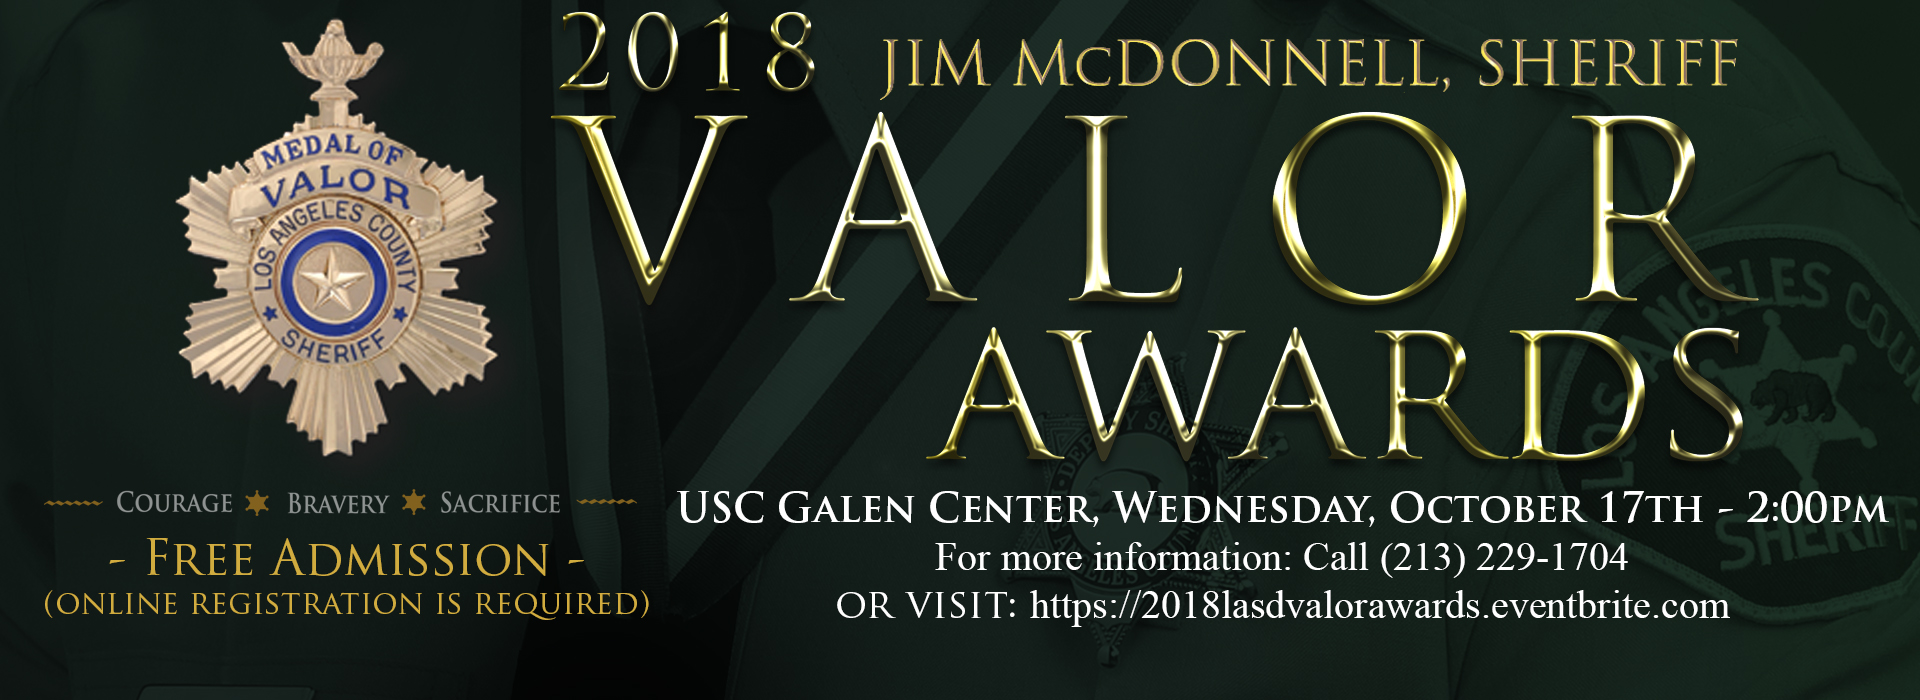 2018 Valor Awards - October 17th @ 2pm for more information call 213-229-1704